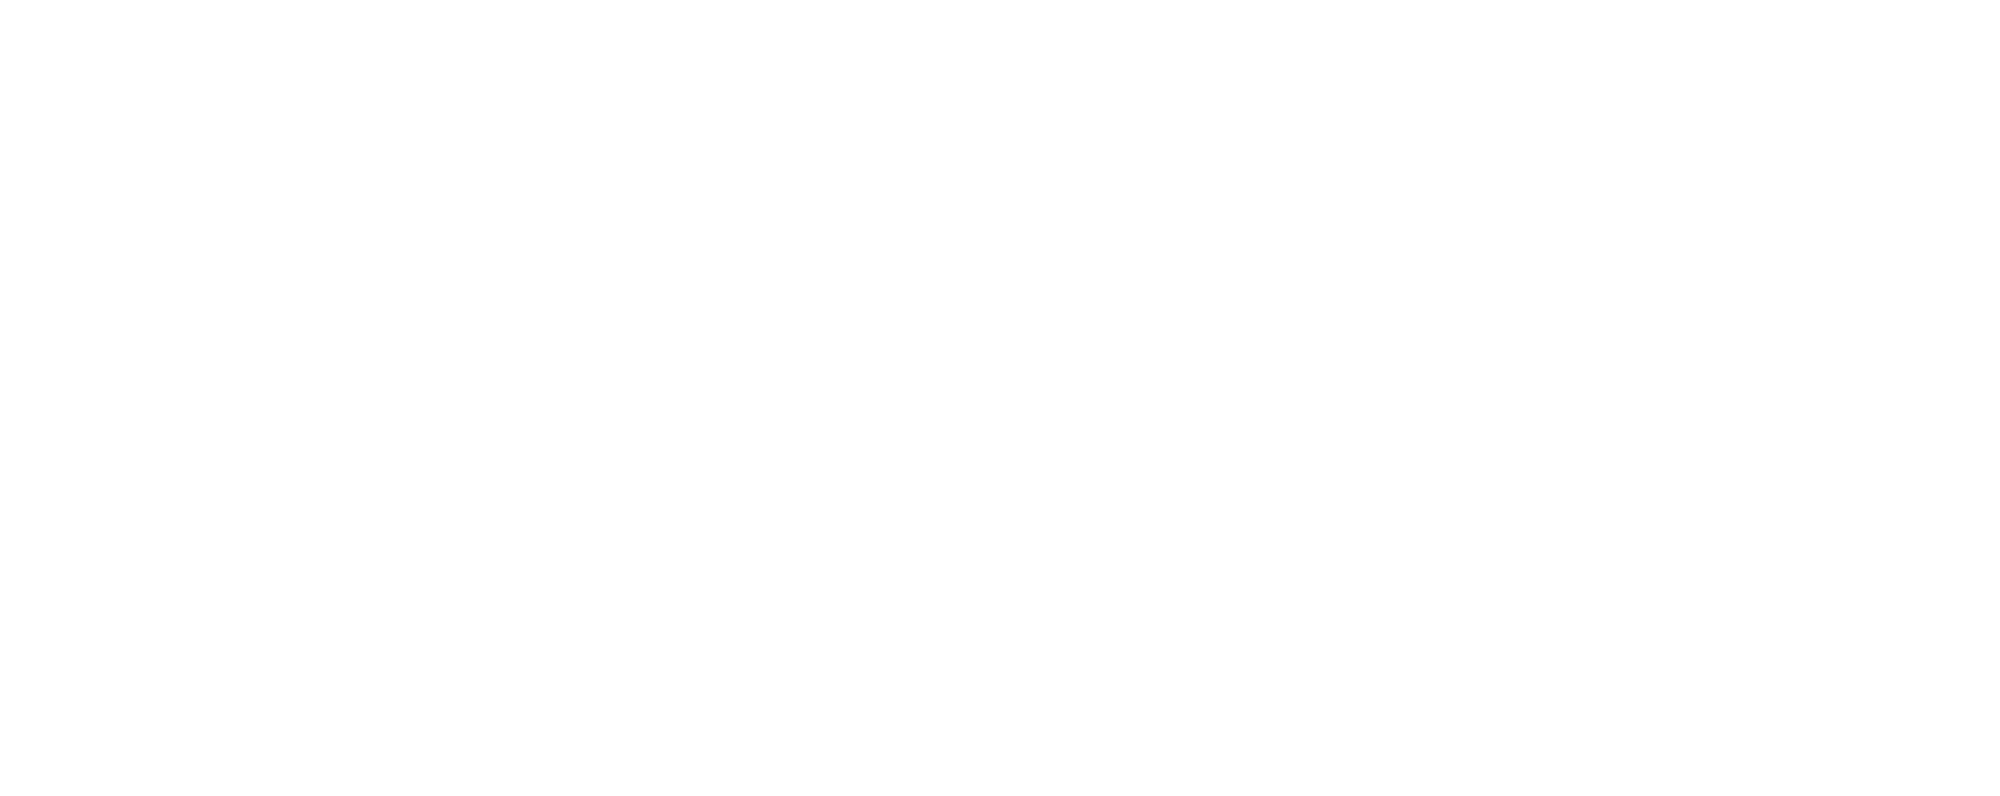 DM & Co Homes